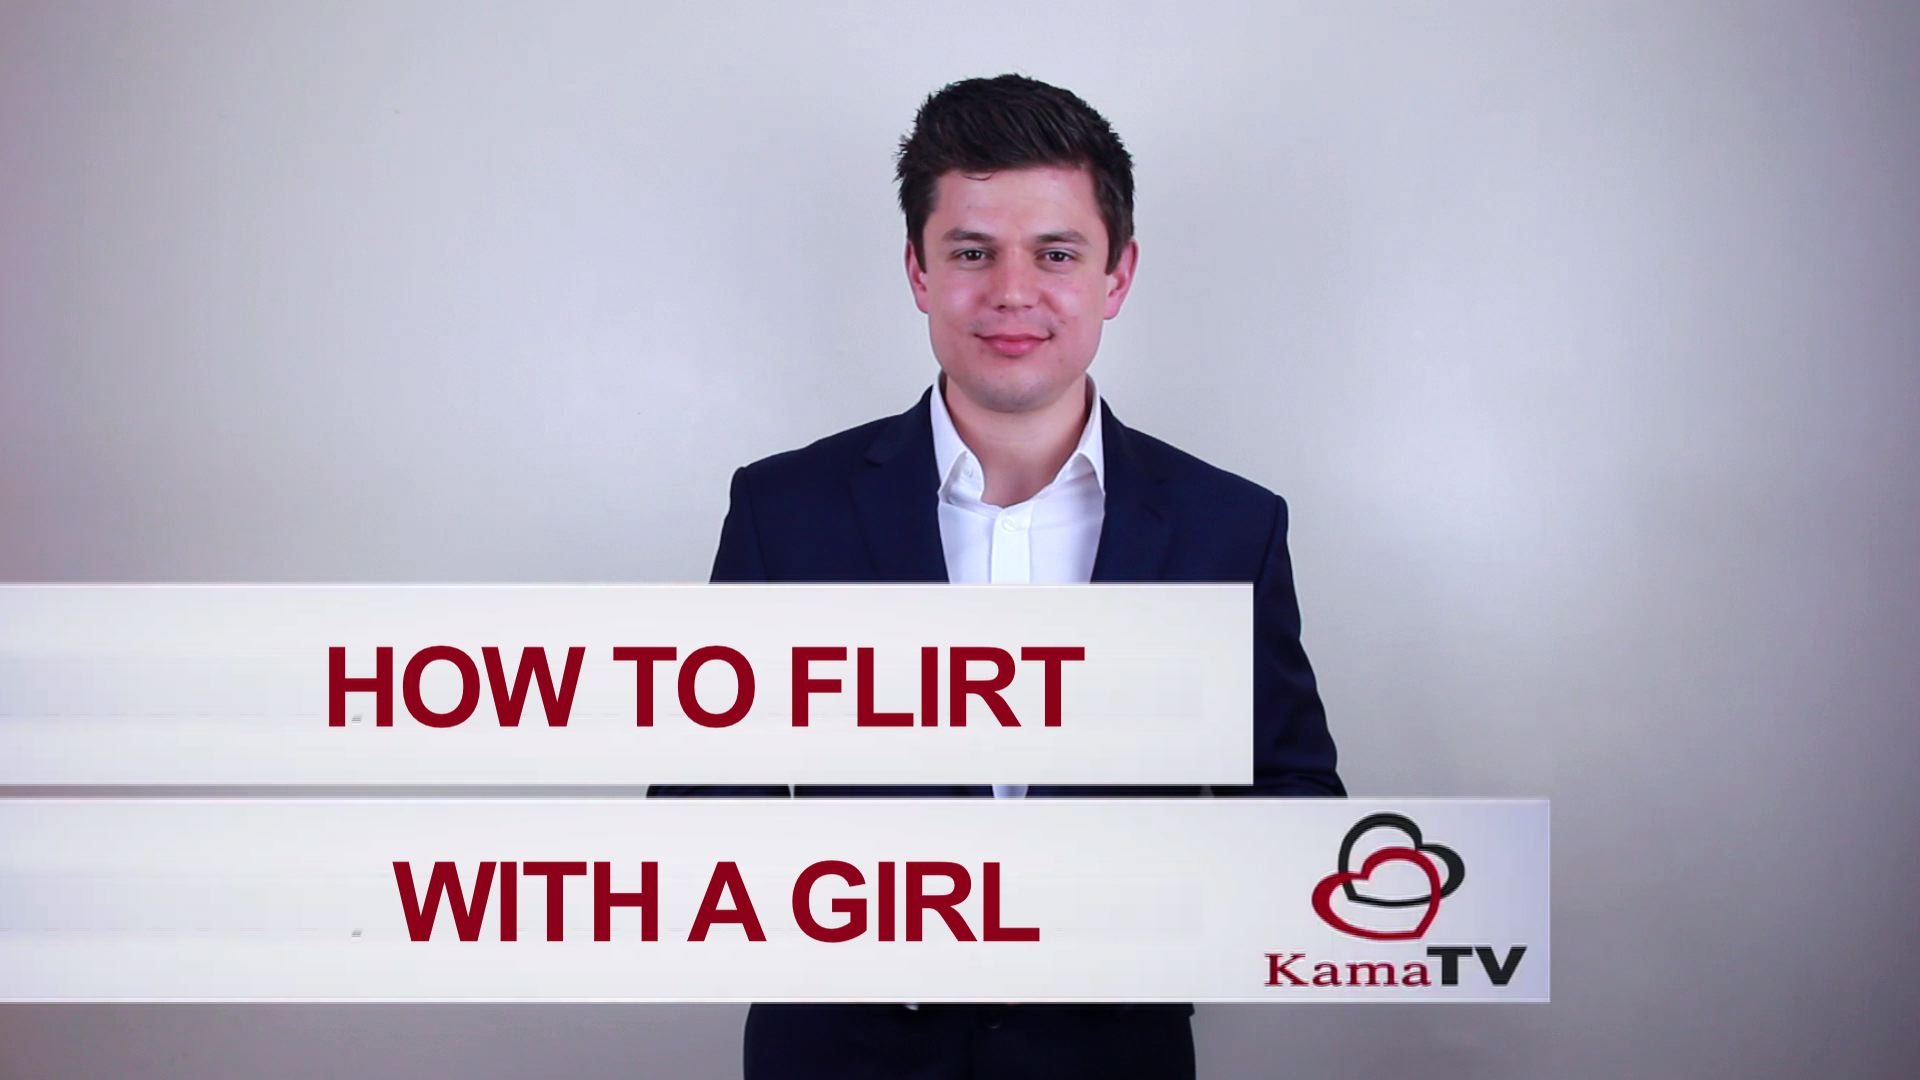 How to flirt with a girl